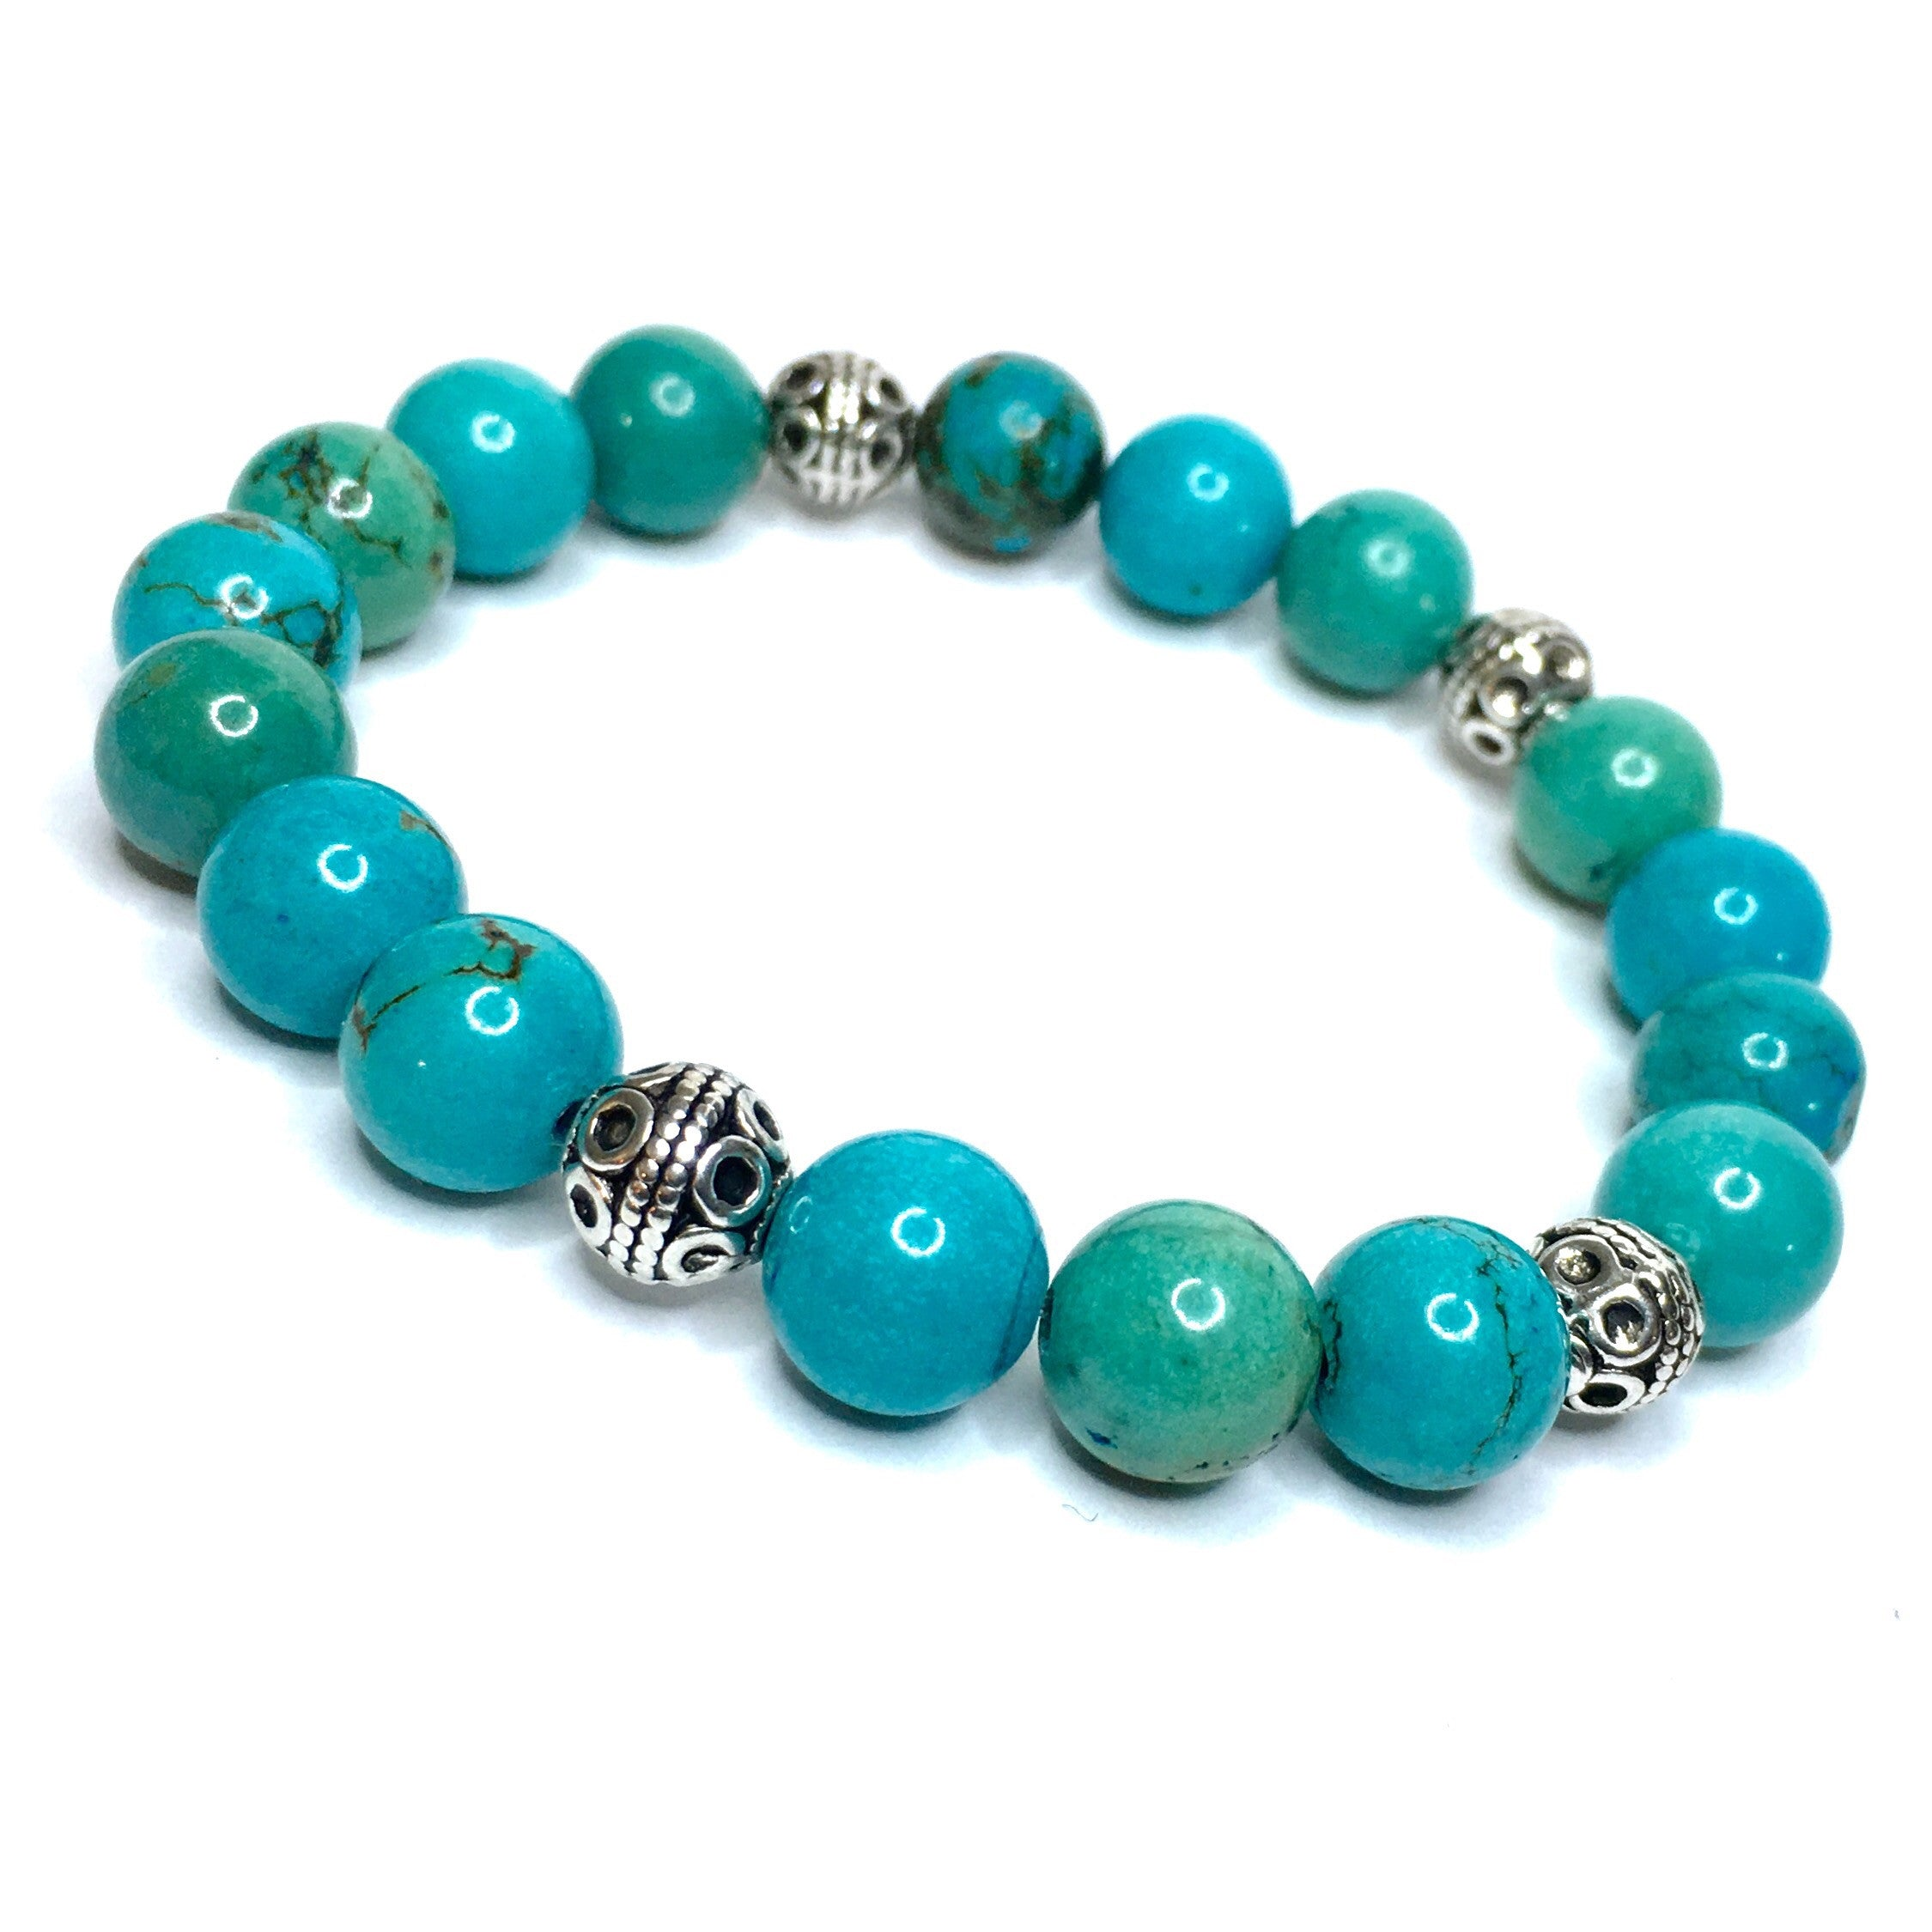 POLISHED TURQUOISE WITH ANTIQUE SILVER ACCENTS - SIMPLY SOFIA